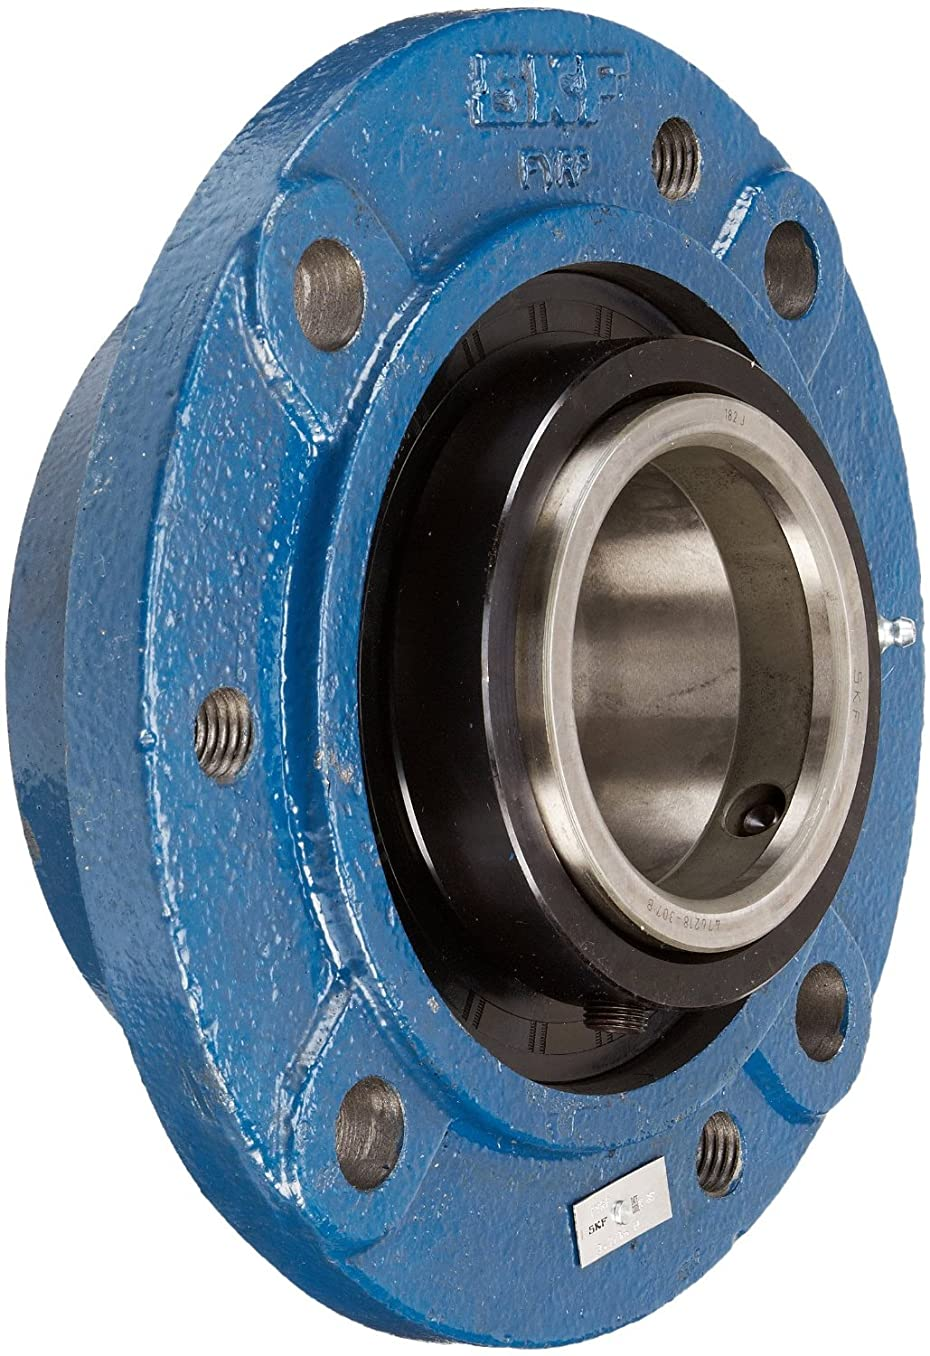 SKF FYRP 2.11/16 Heavy-Duty Spherical Bearing Piloted Flange Unit, 4 Bolts, Setscrew Locking, Expansion Type, Regreasable, Contact Seal, Cast Iron, 2.6875